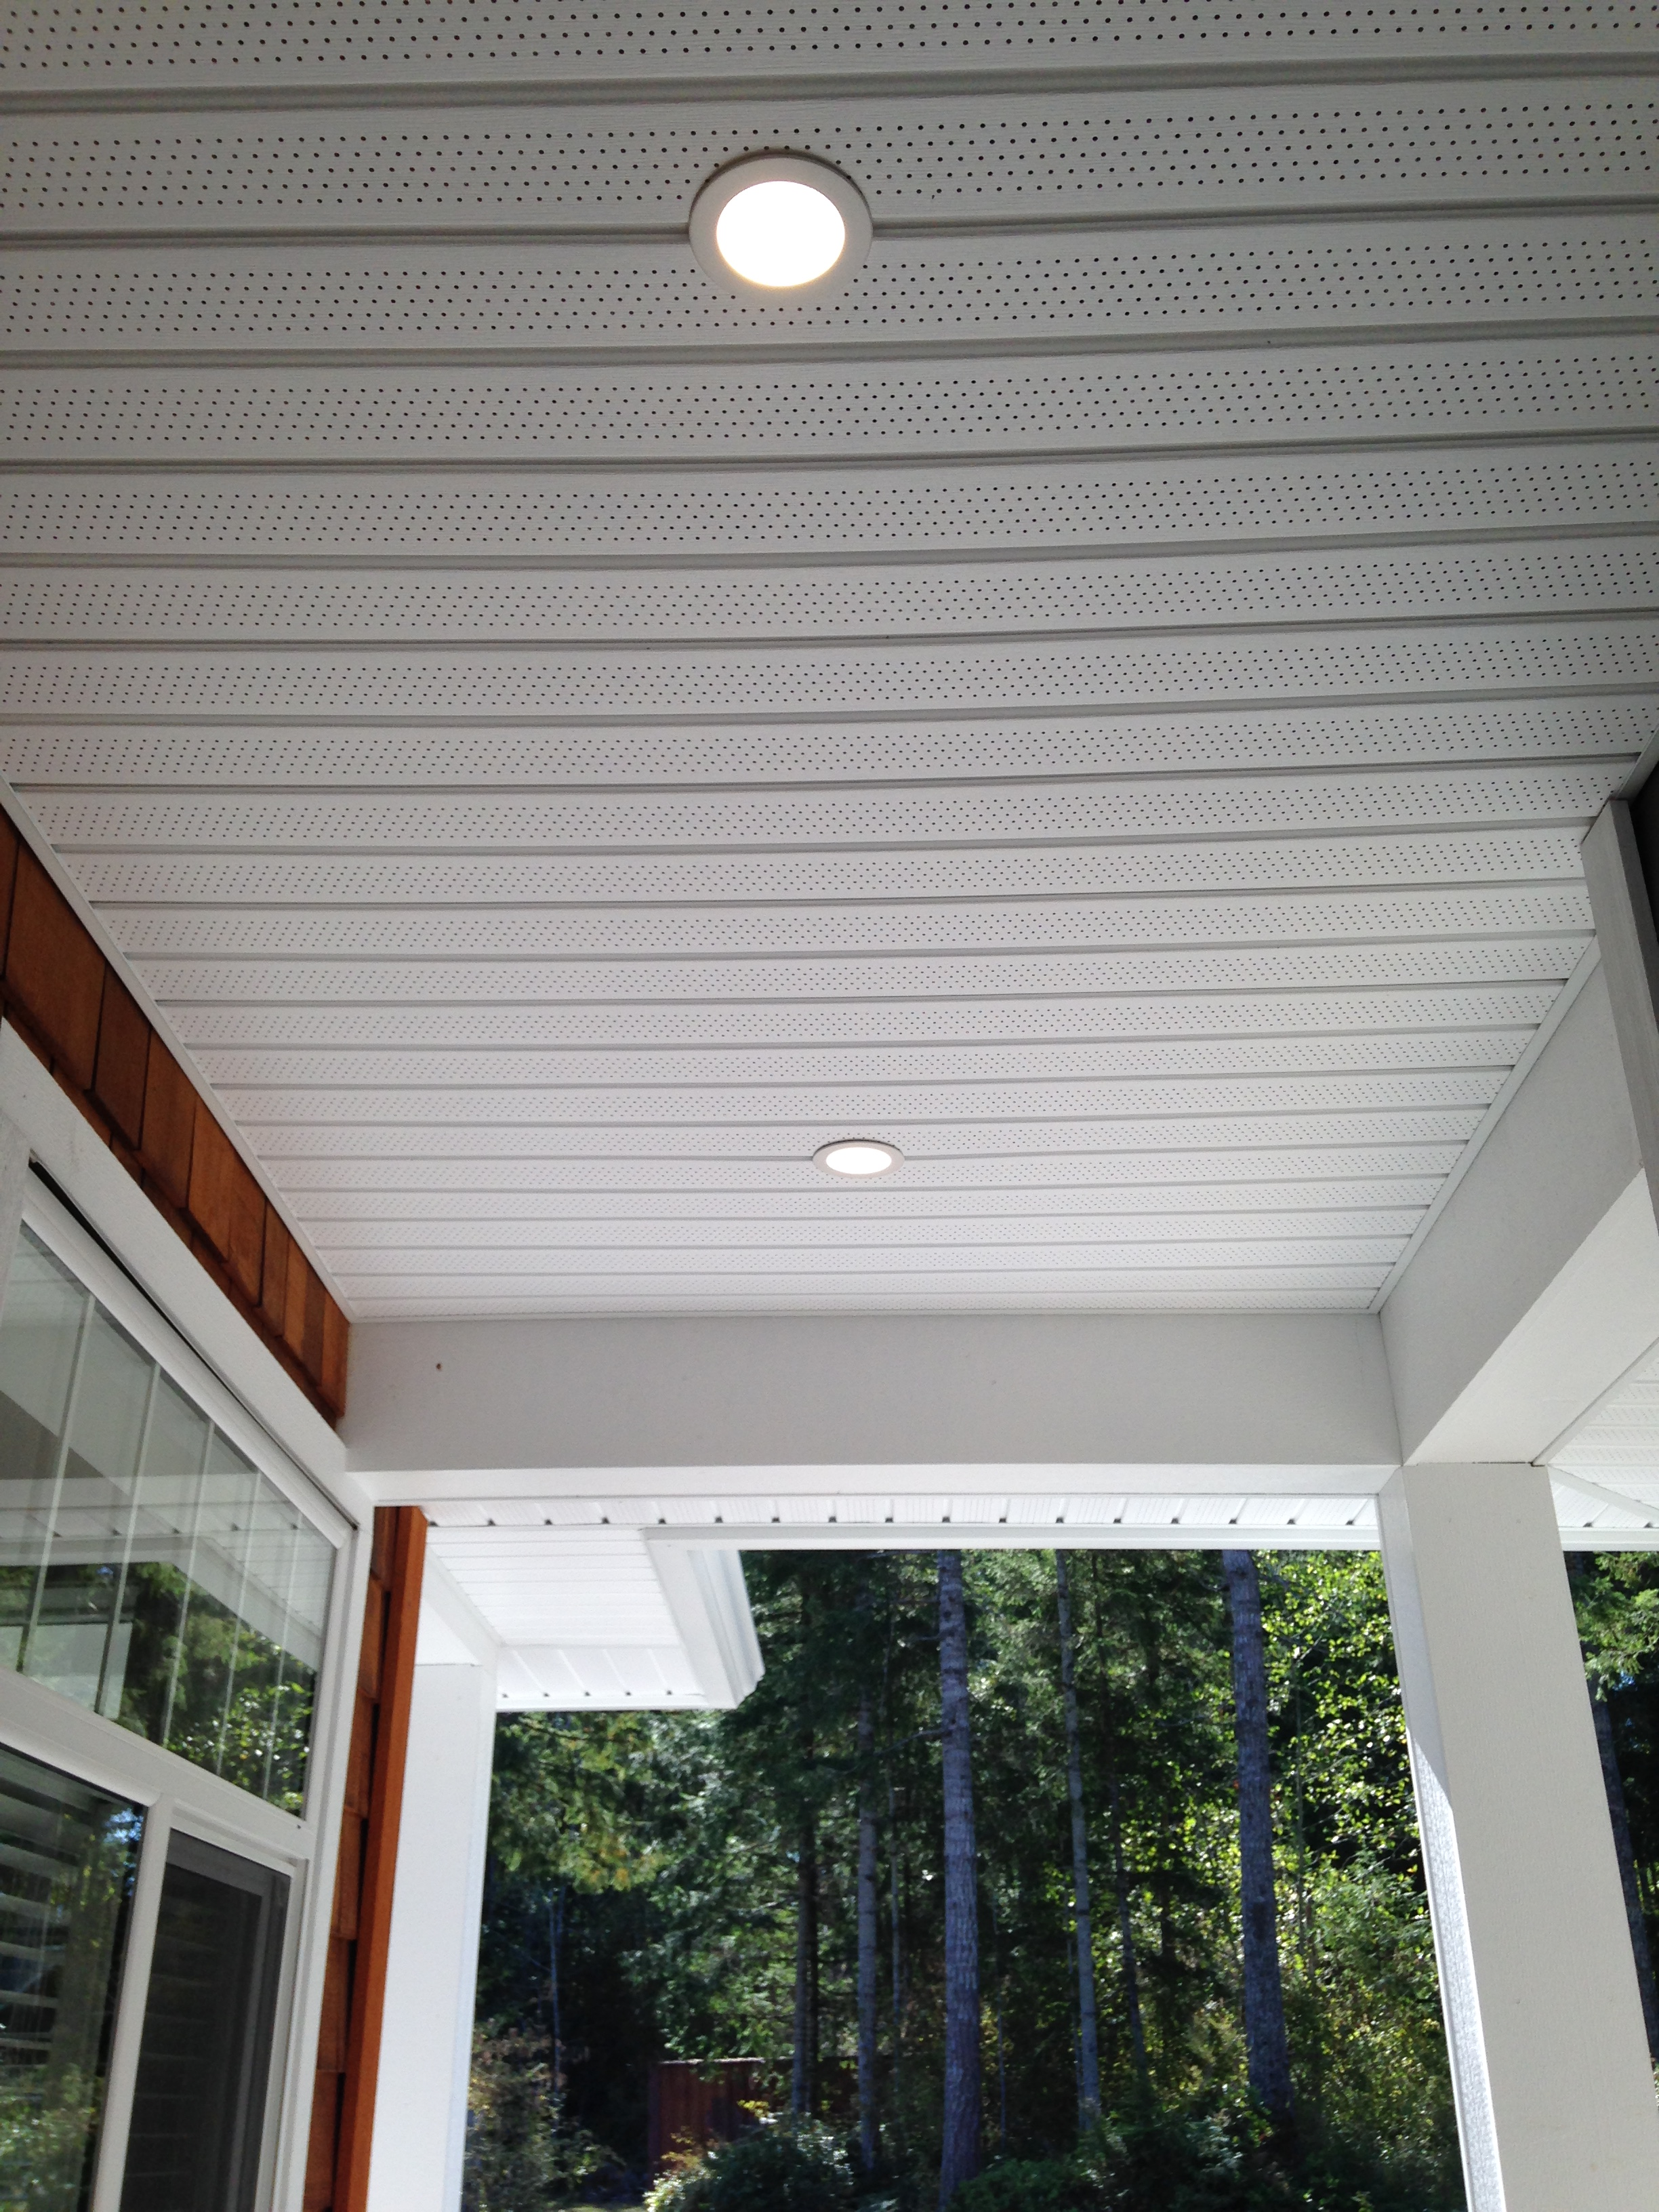 energy efficient long life Low Profile LED Downlights